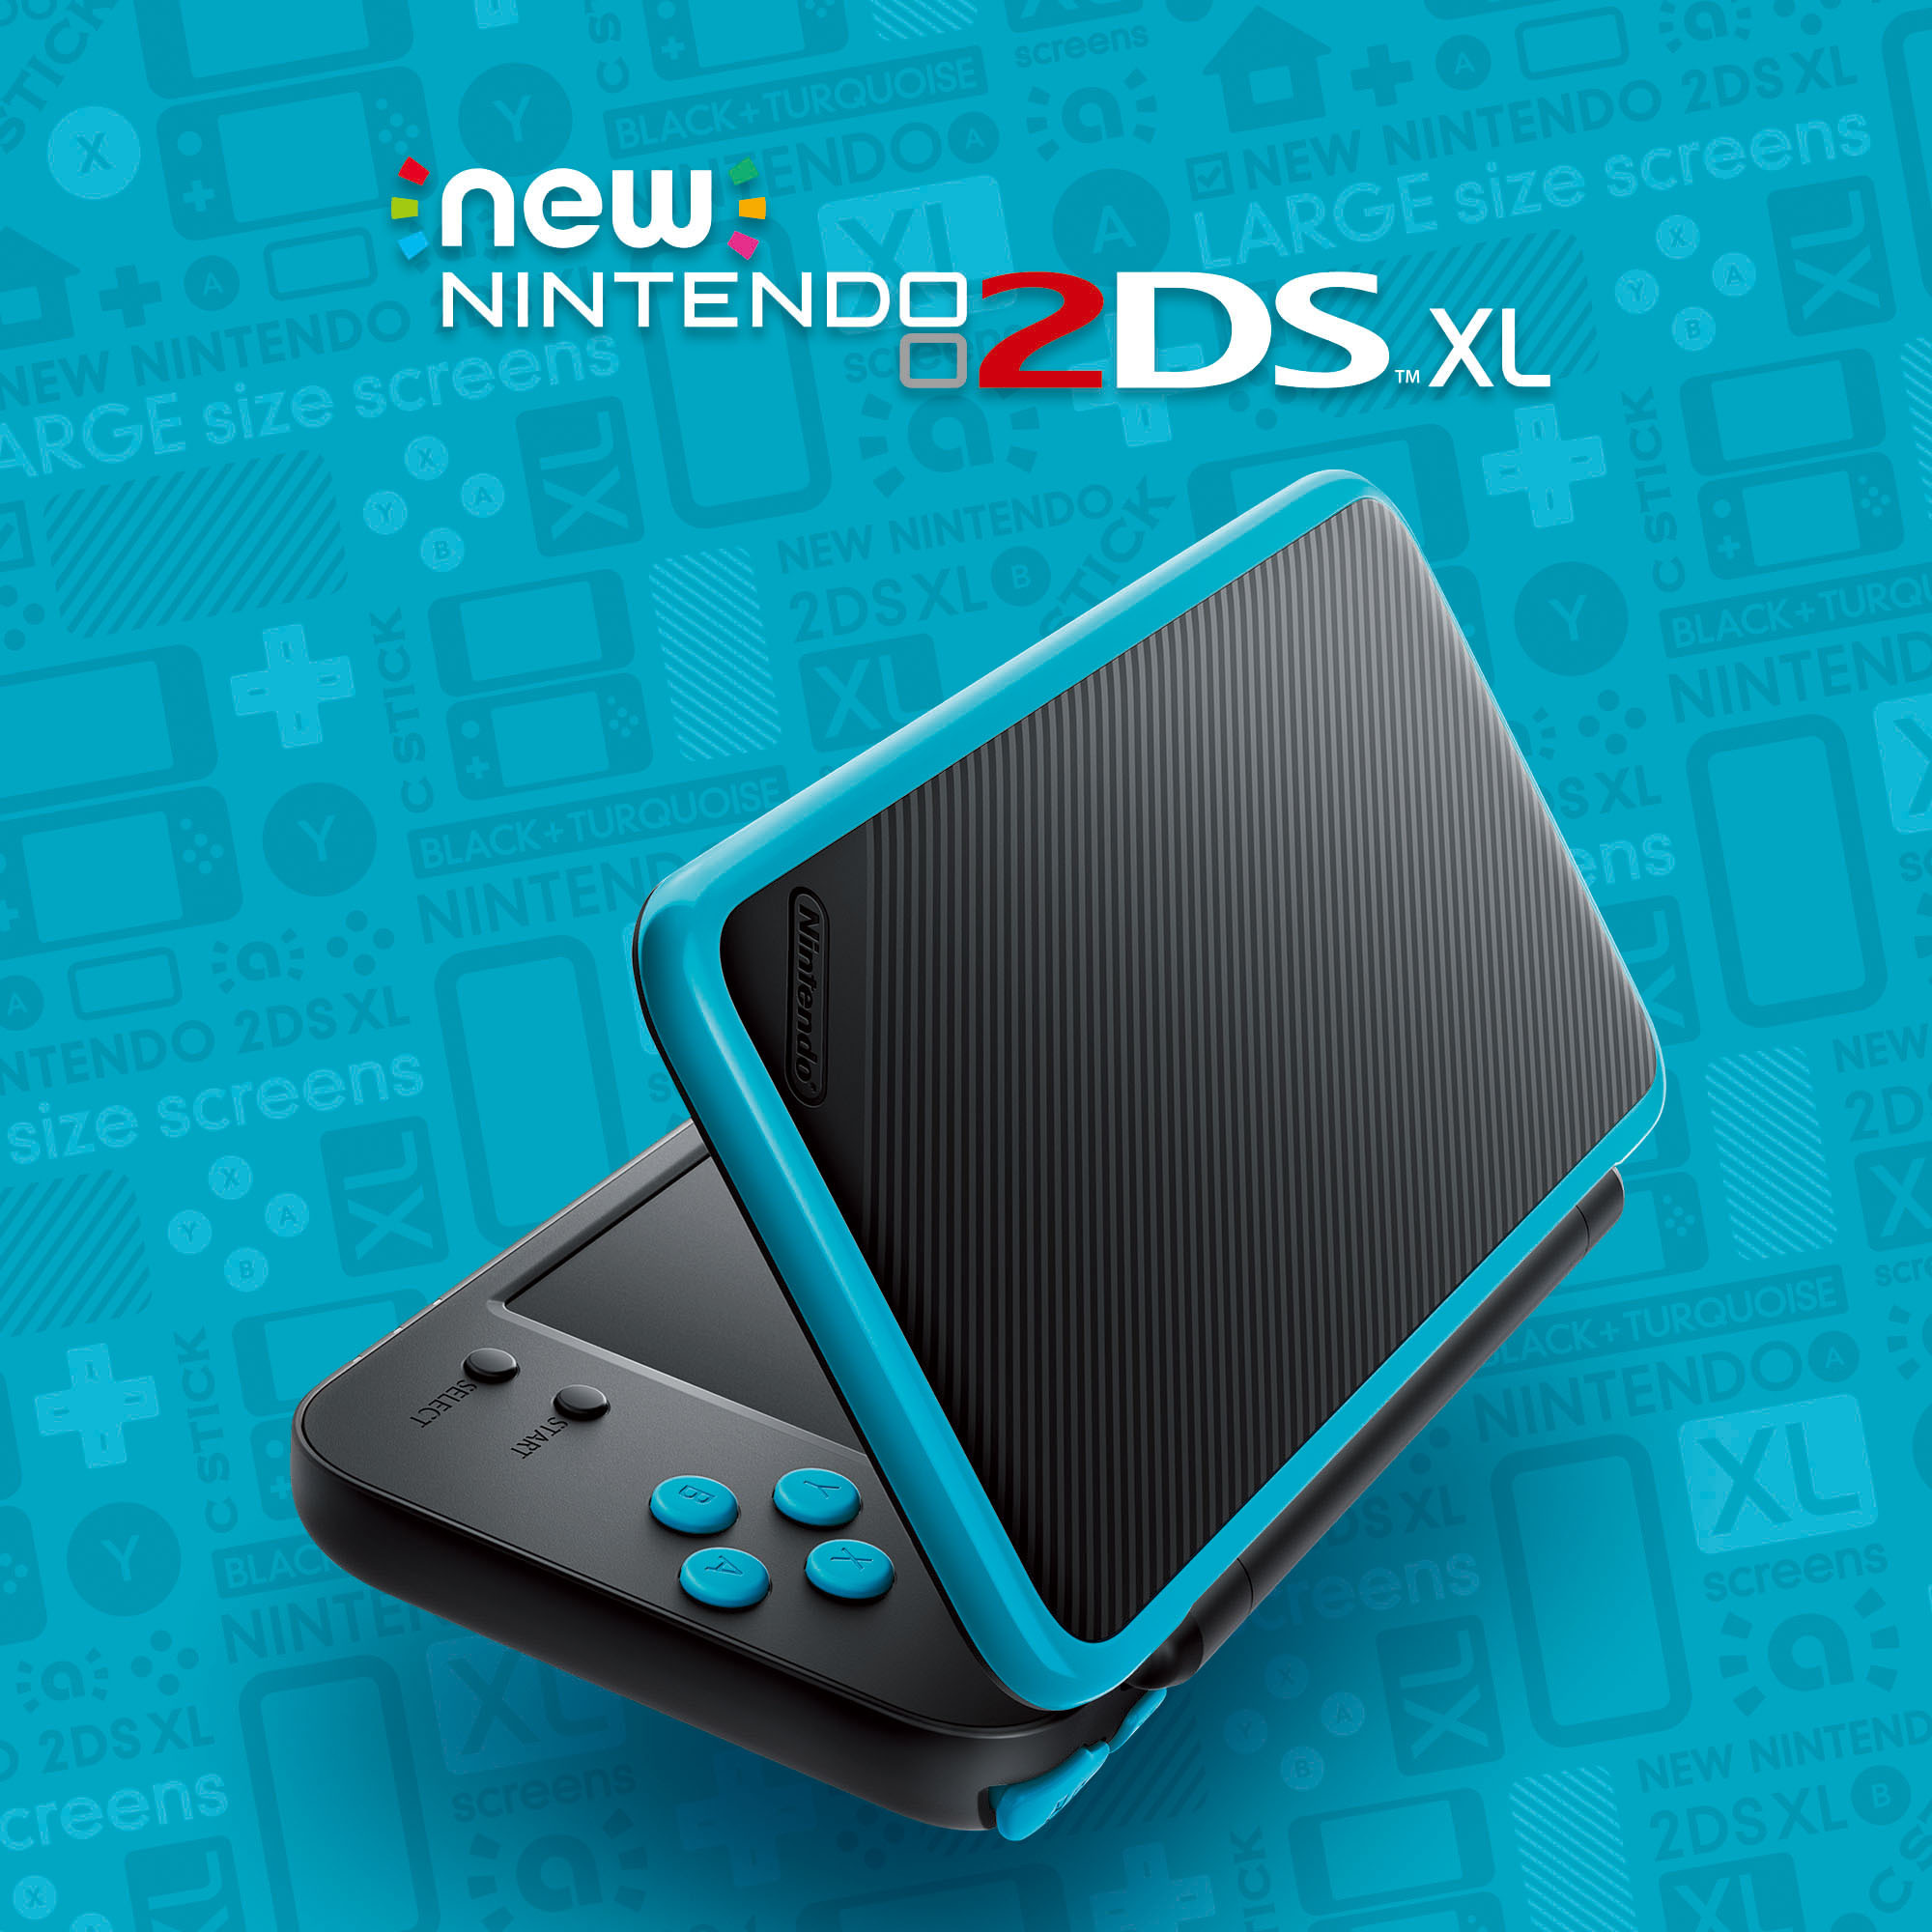 With the E3 video game conference in the rear-view mirror, Nintendo is now looking ahead to all the great games coming to Nintendo 3DS this year. (Photo: Business Wire)